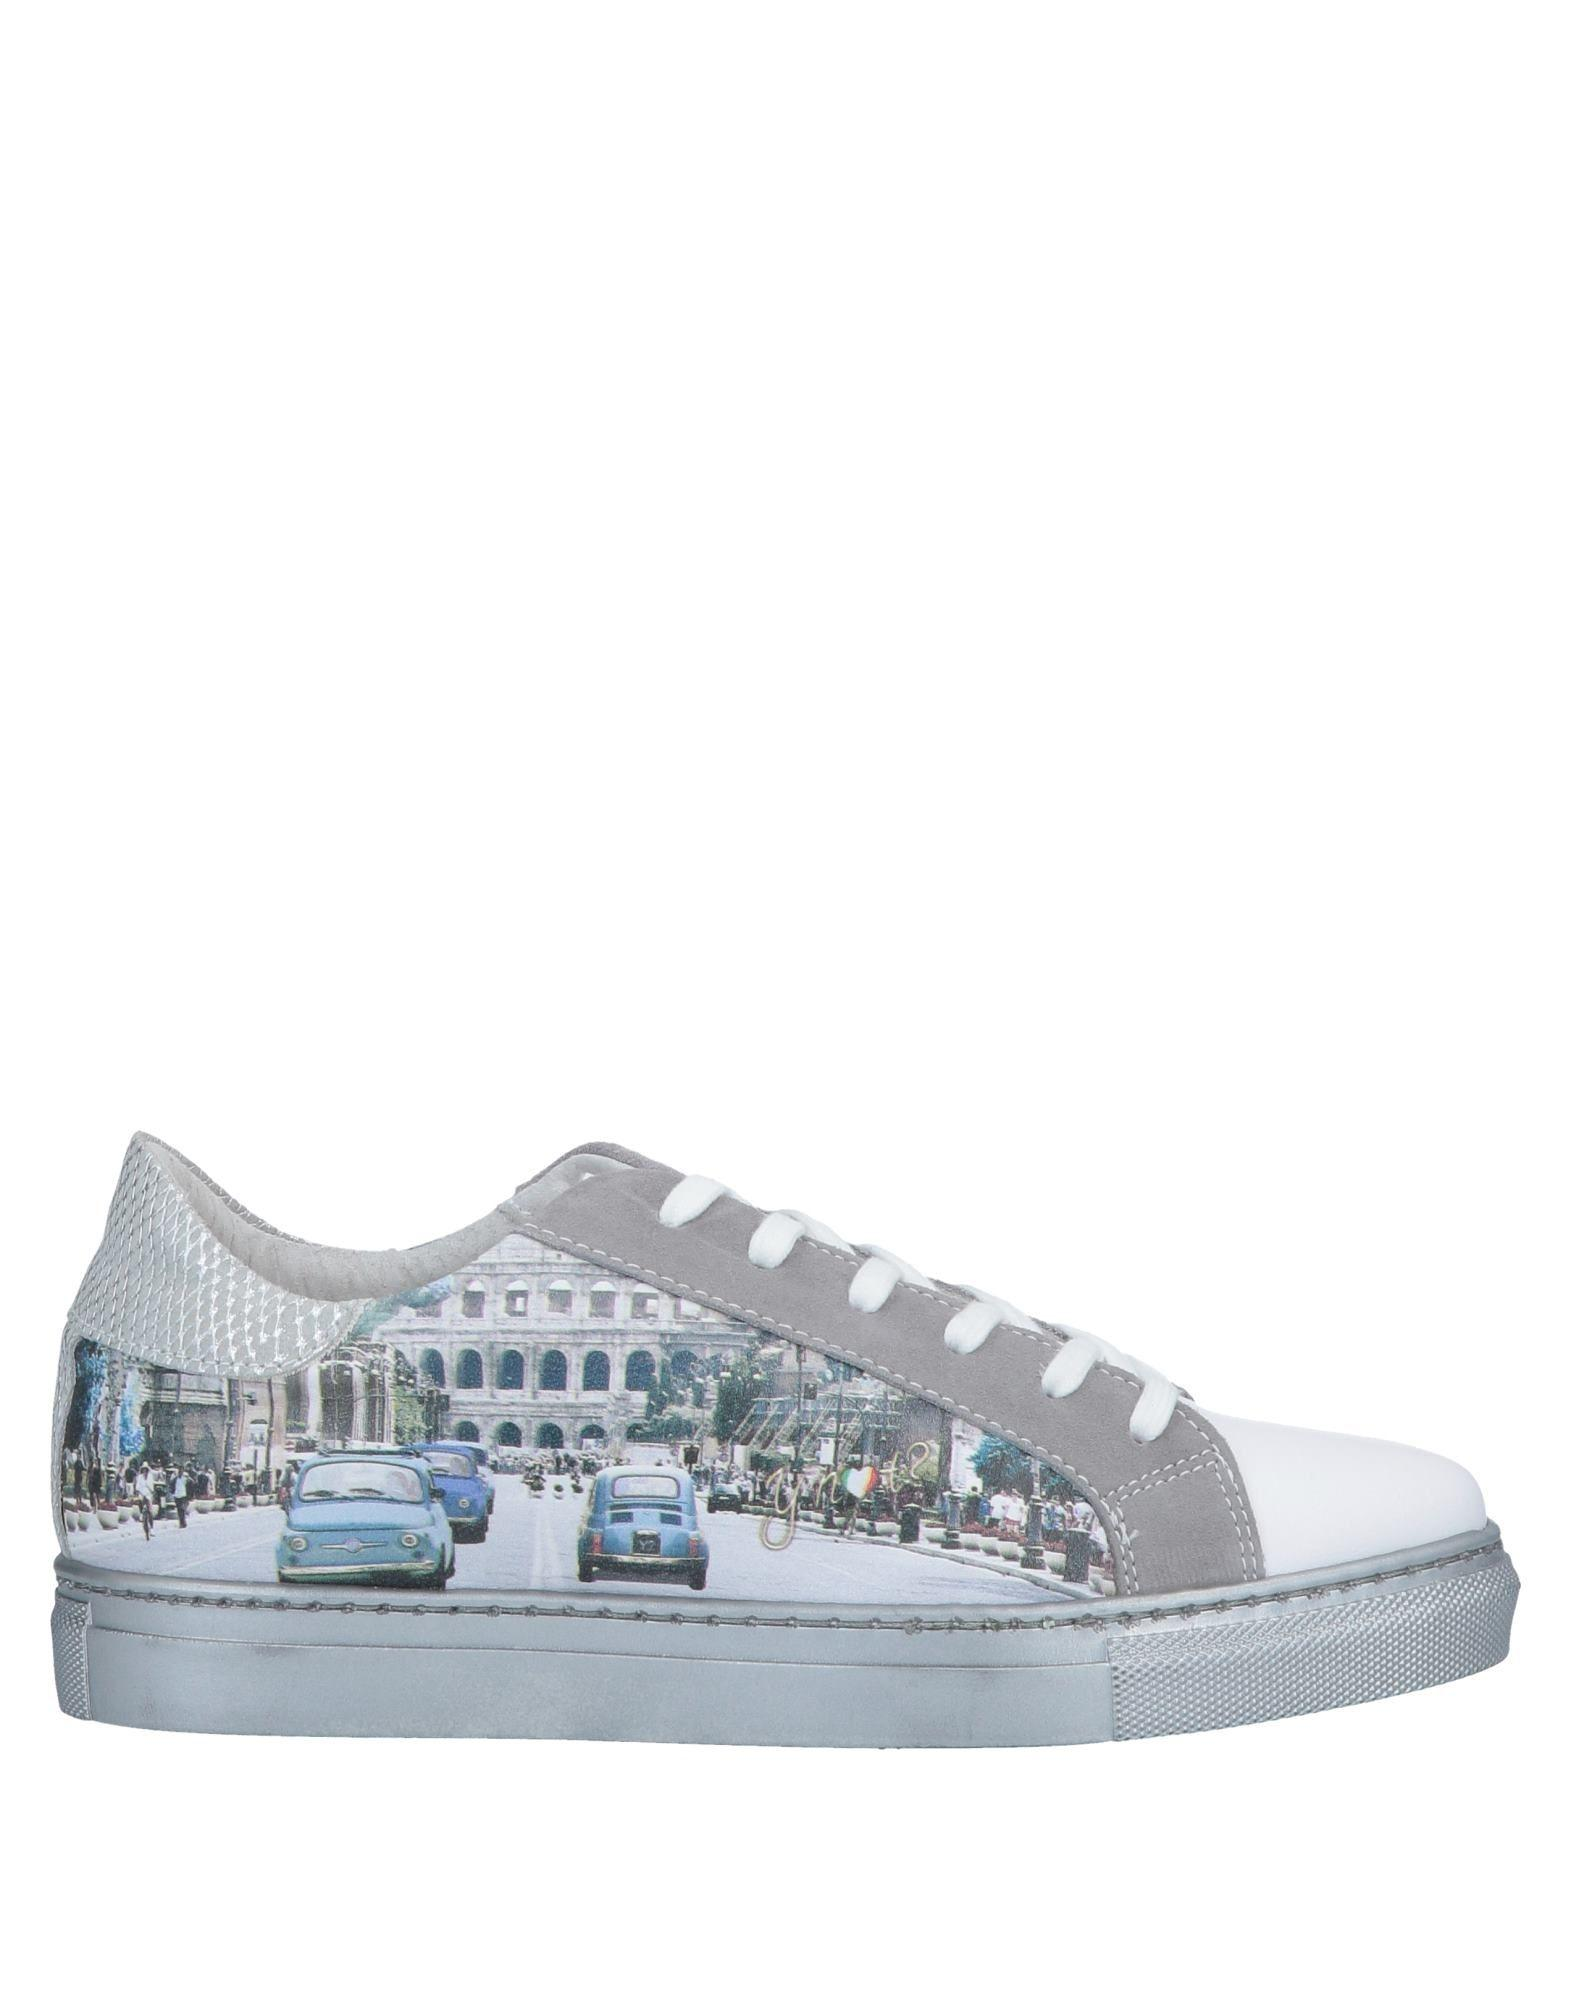 Not Y White Tops In Sneakers Low Lyst amp; 1FT8Rxx